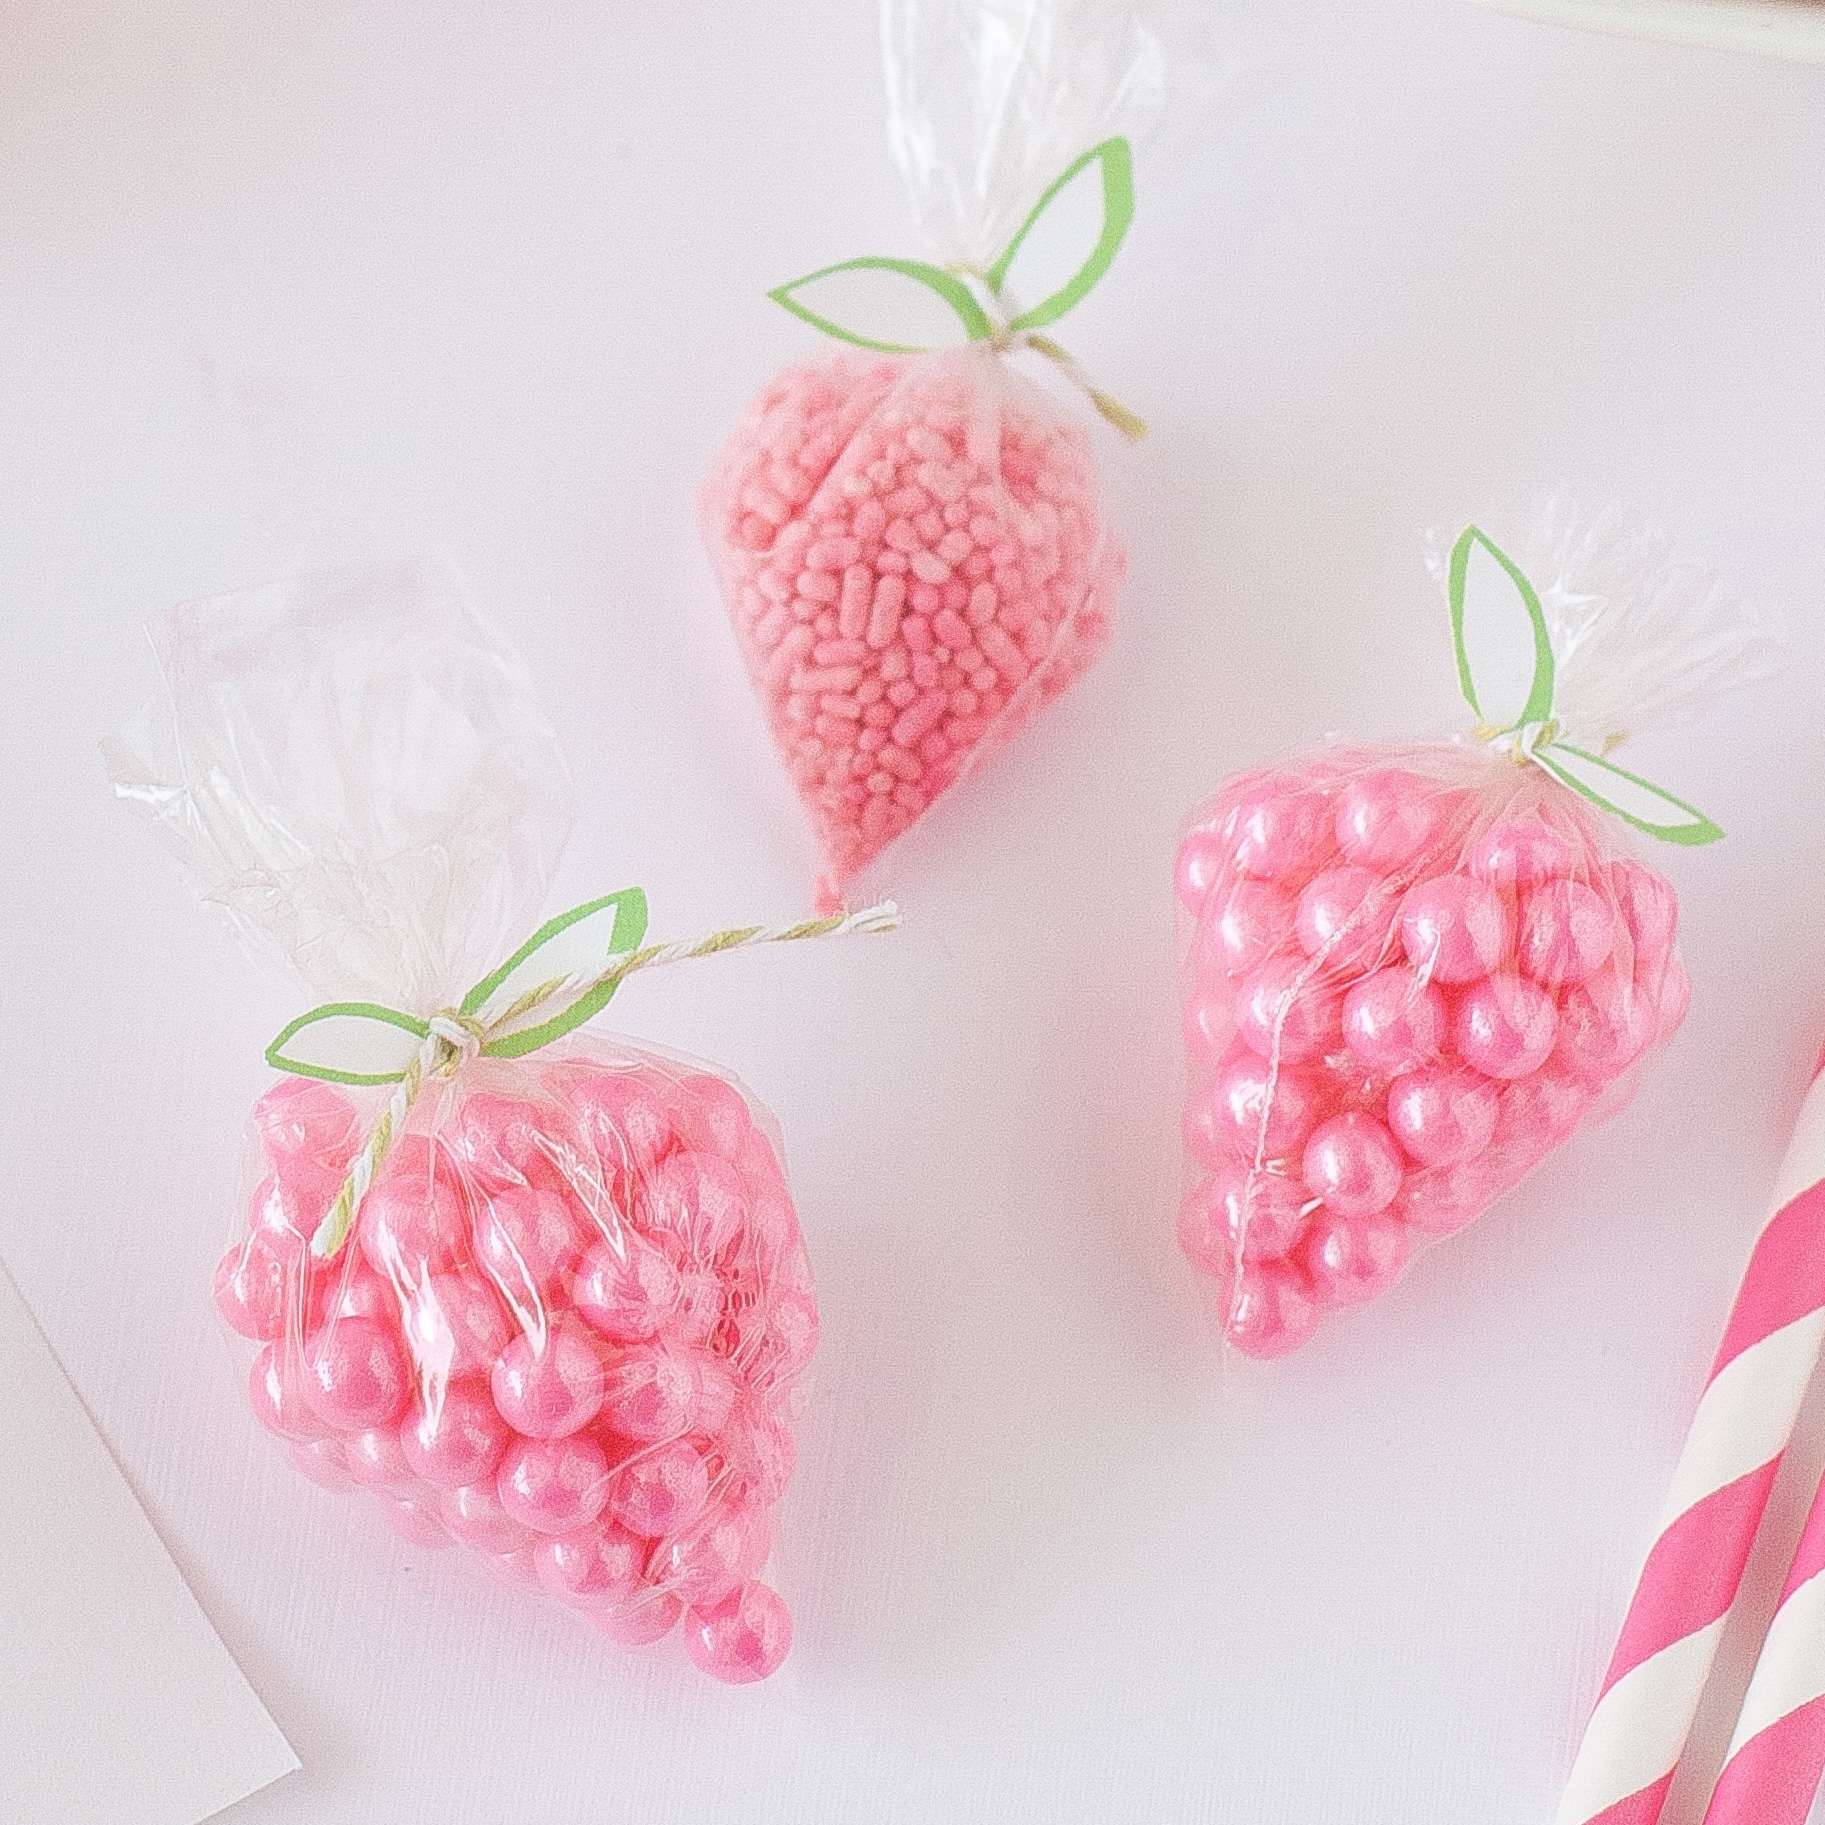 DIY Strawberry Sprinkle Party Favors